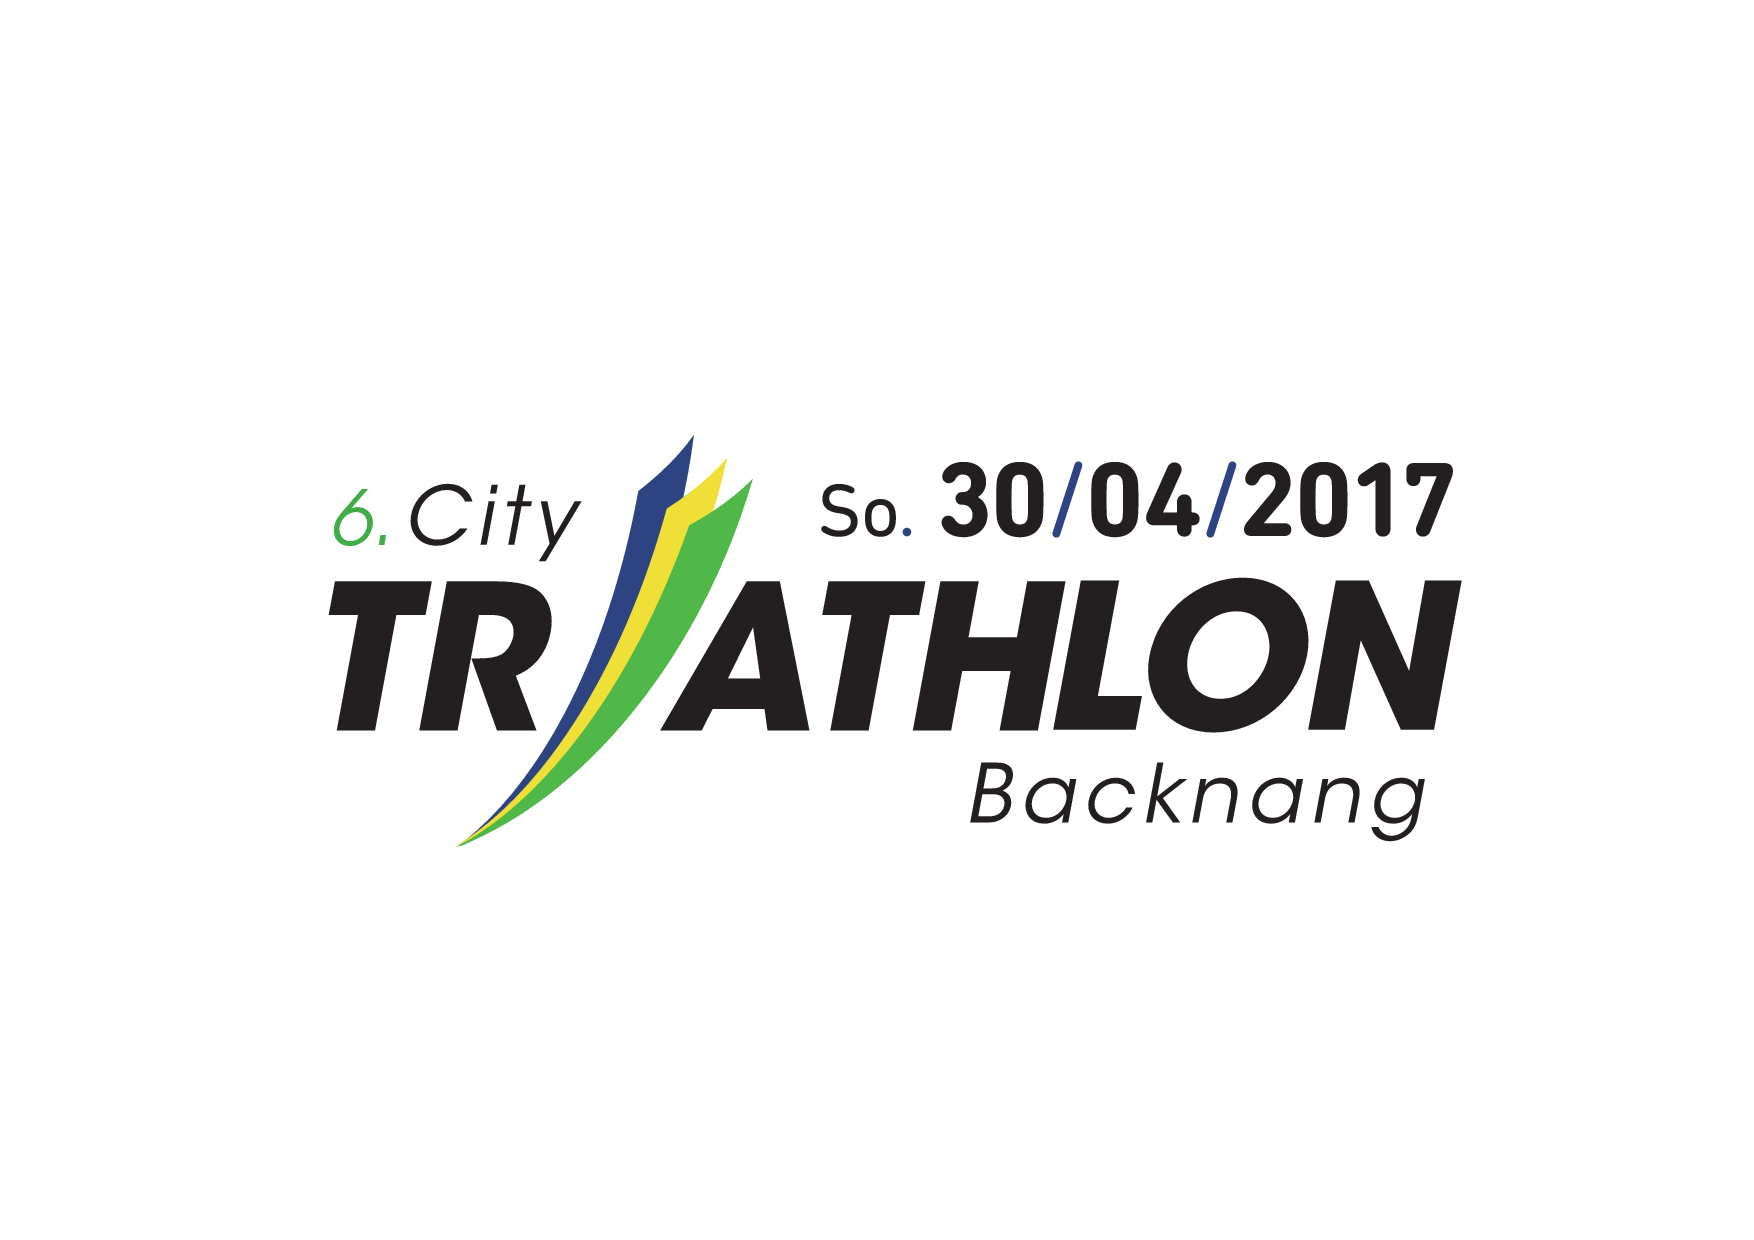 City-Triathlon Backnang 2017